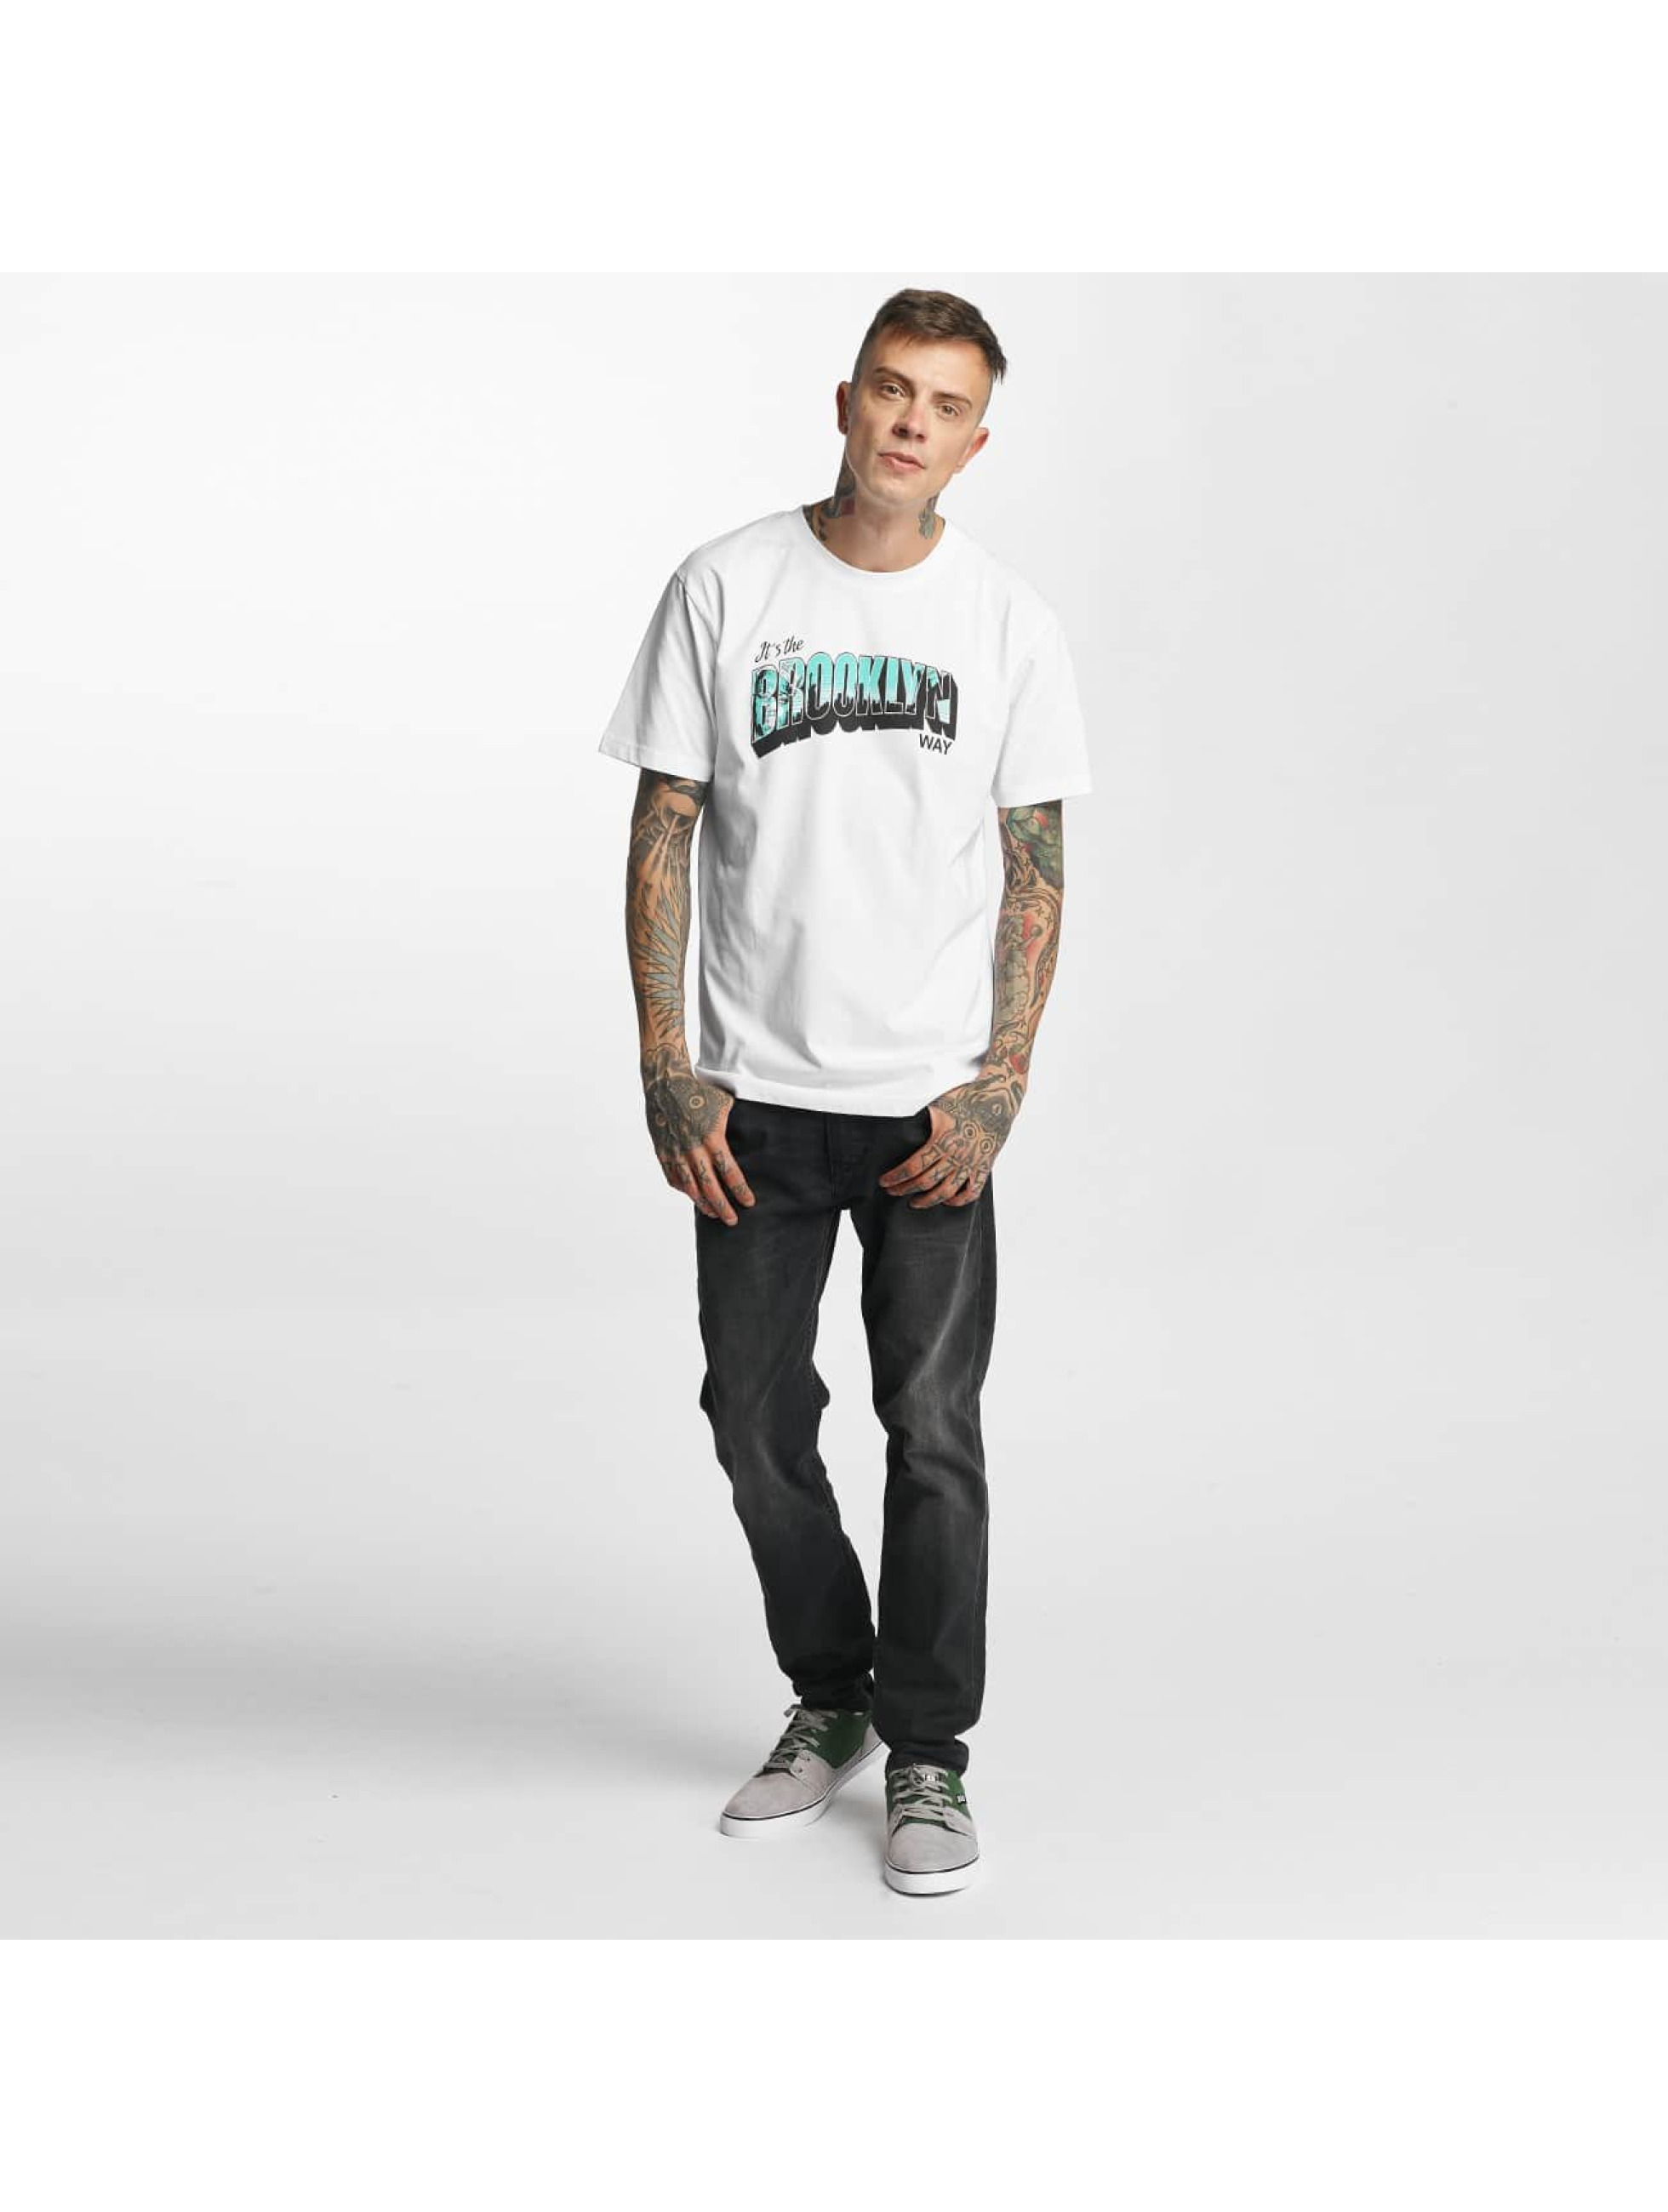 Mister Tee T-Shirt Brooklyn Way white